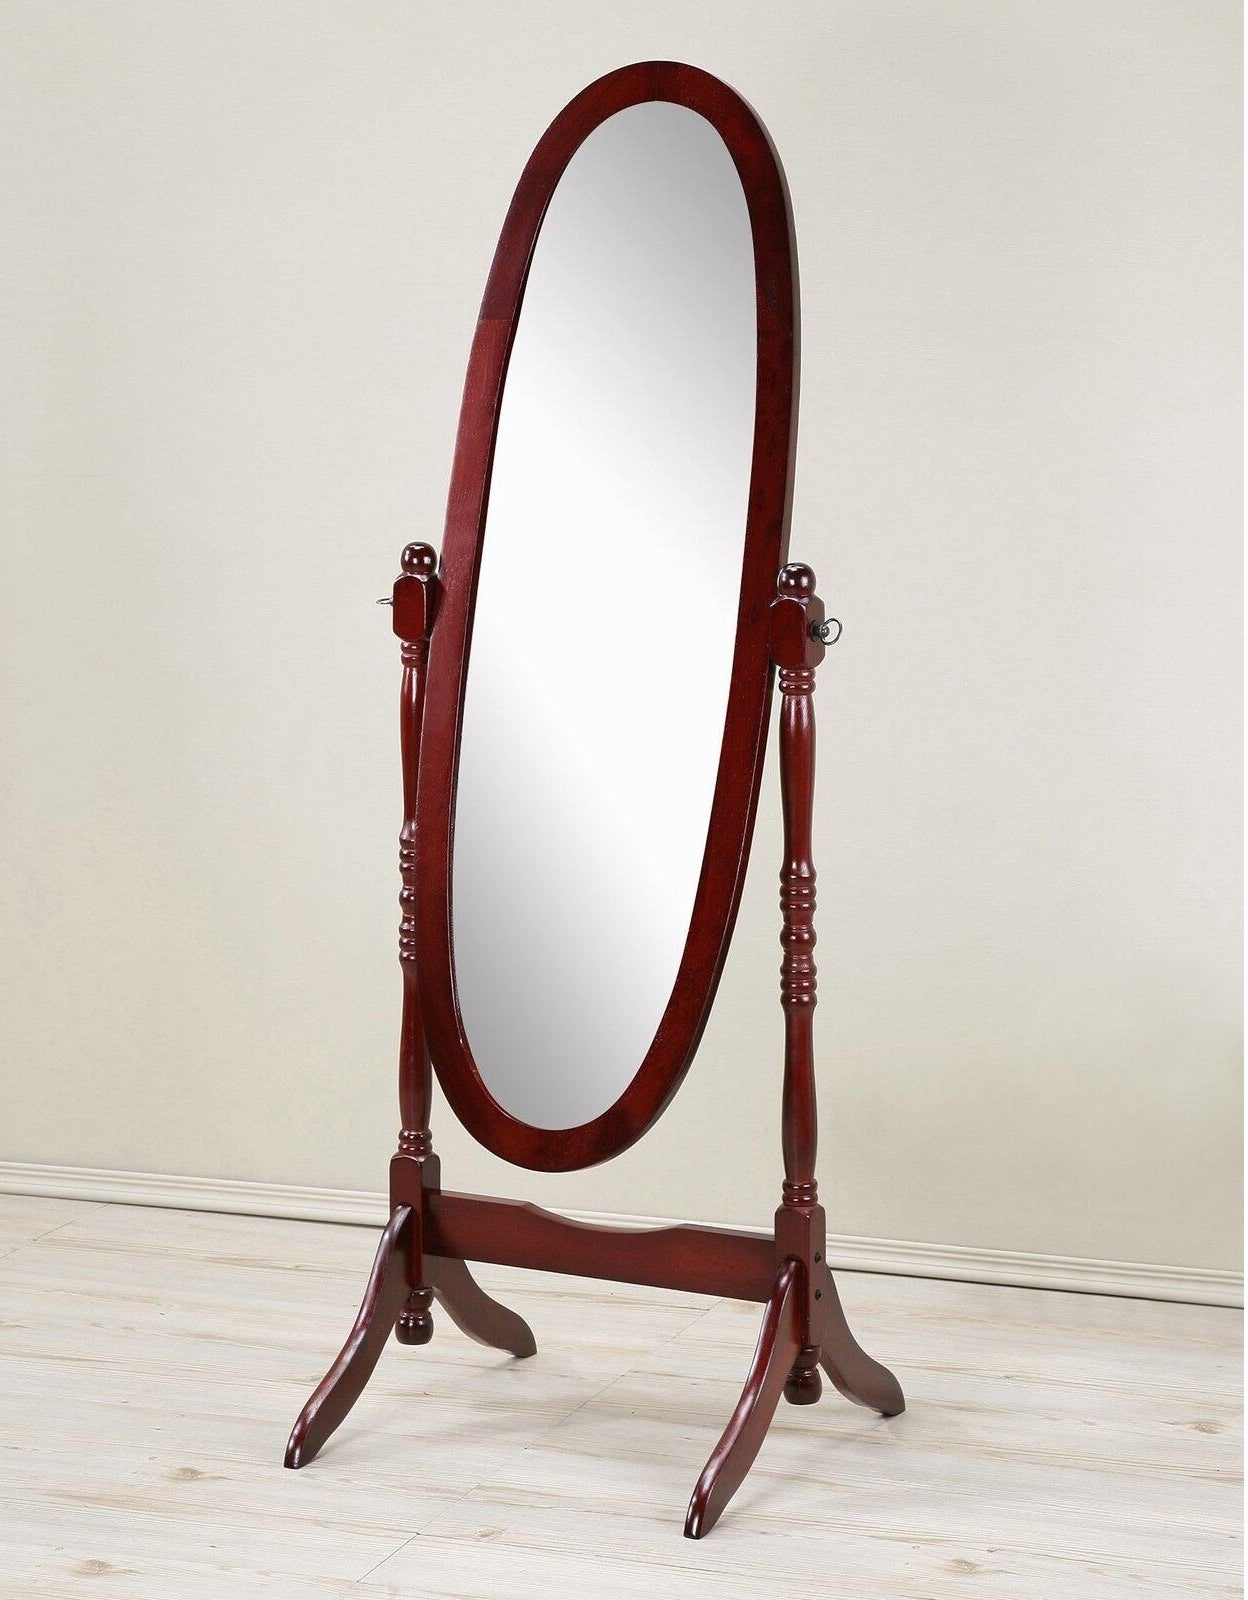 An oval mirror with a cherry wood frame and legs